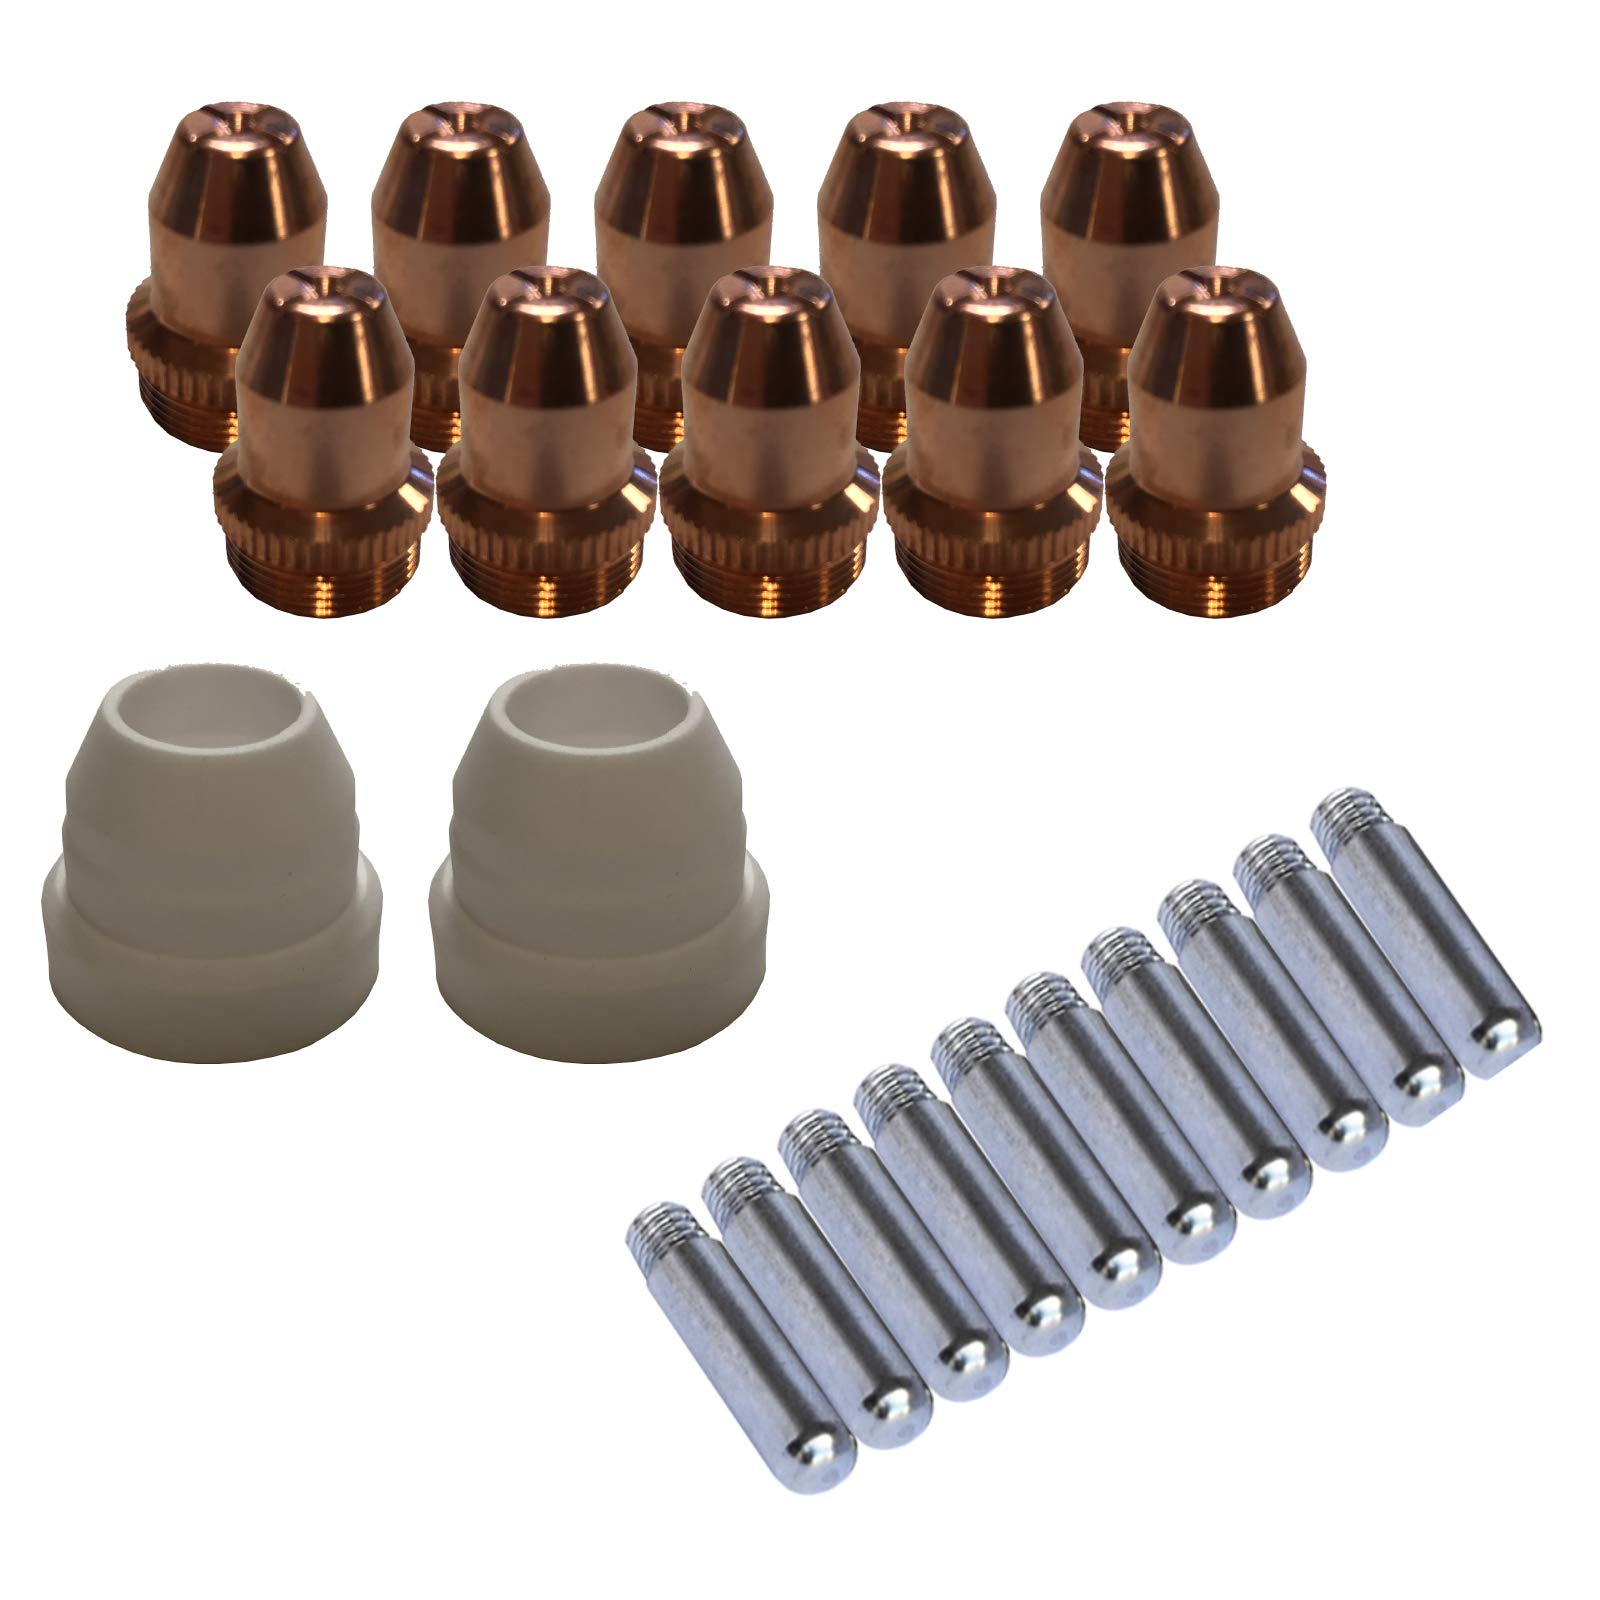 Lotos LCS22 Plasma Cutter Consumables Sets for Brown Color LT5000D and Brown Color CT520D (22 Pieces) by LOTOS